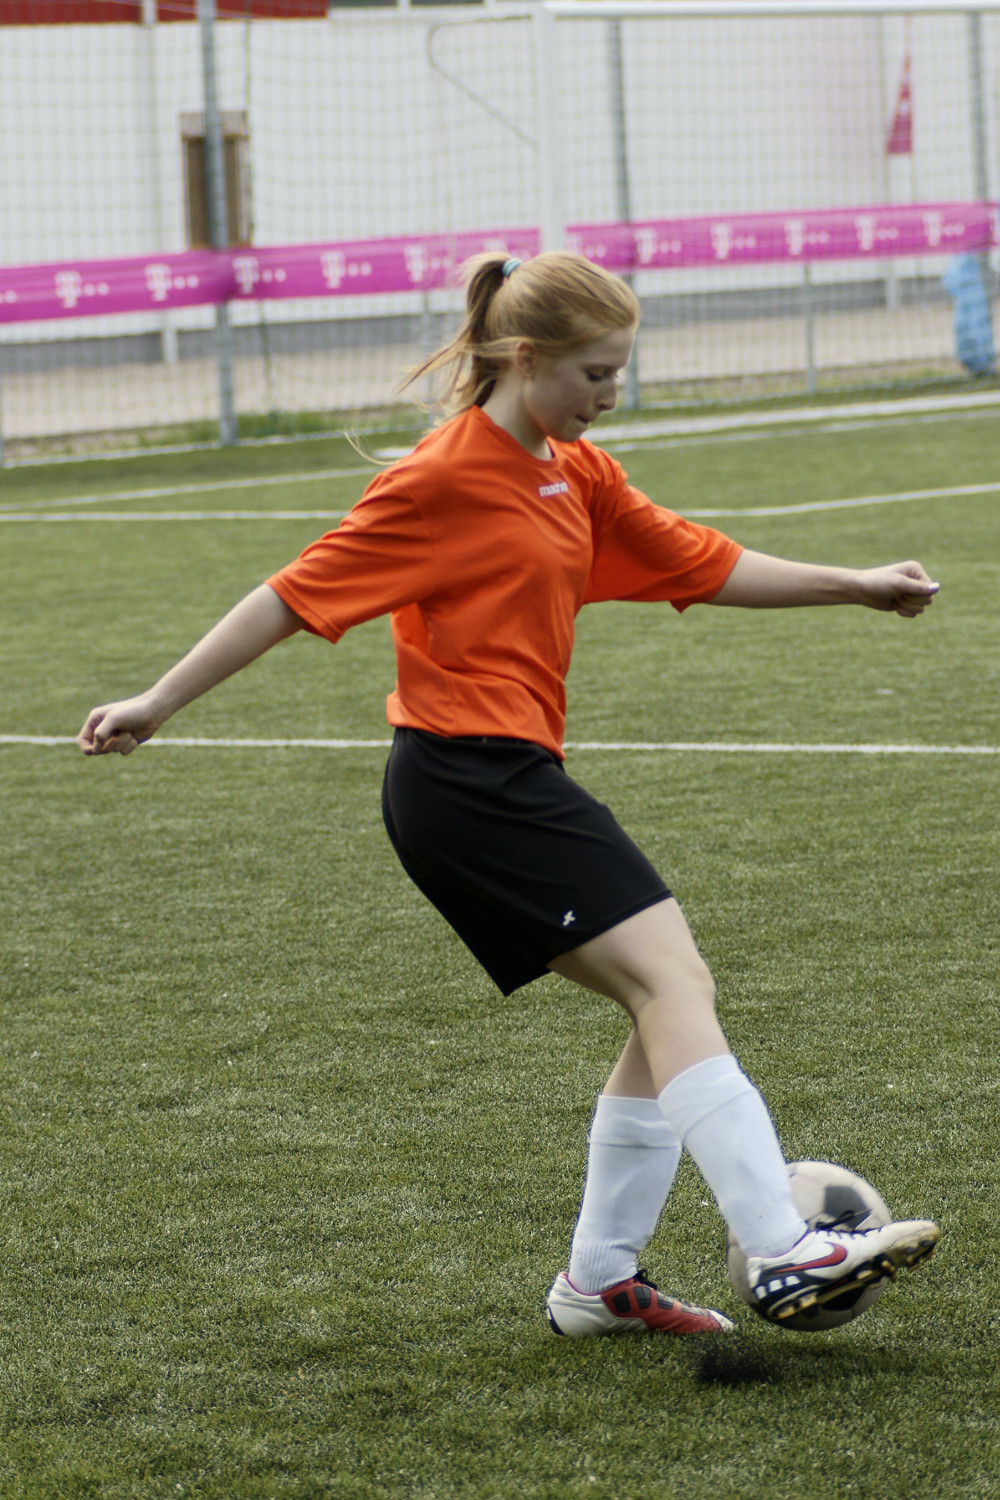 girl playing soccer Double-Barrelled Travel